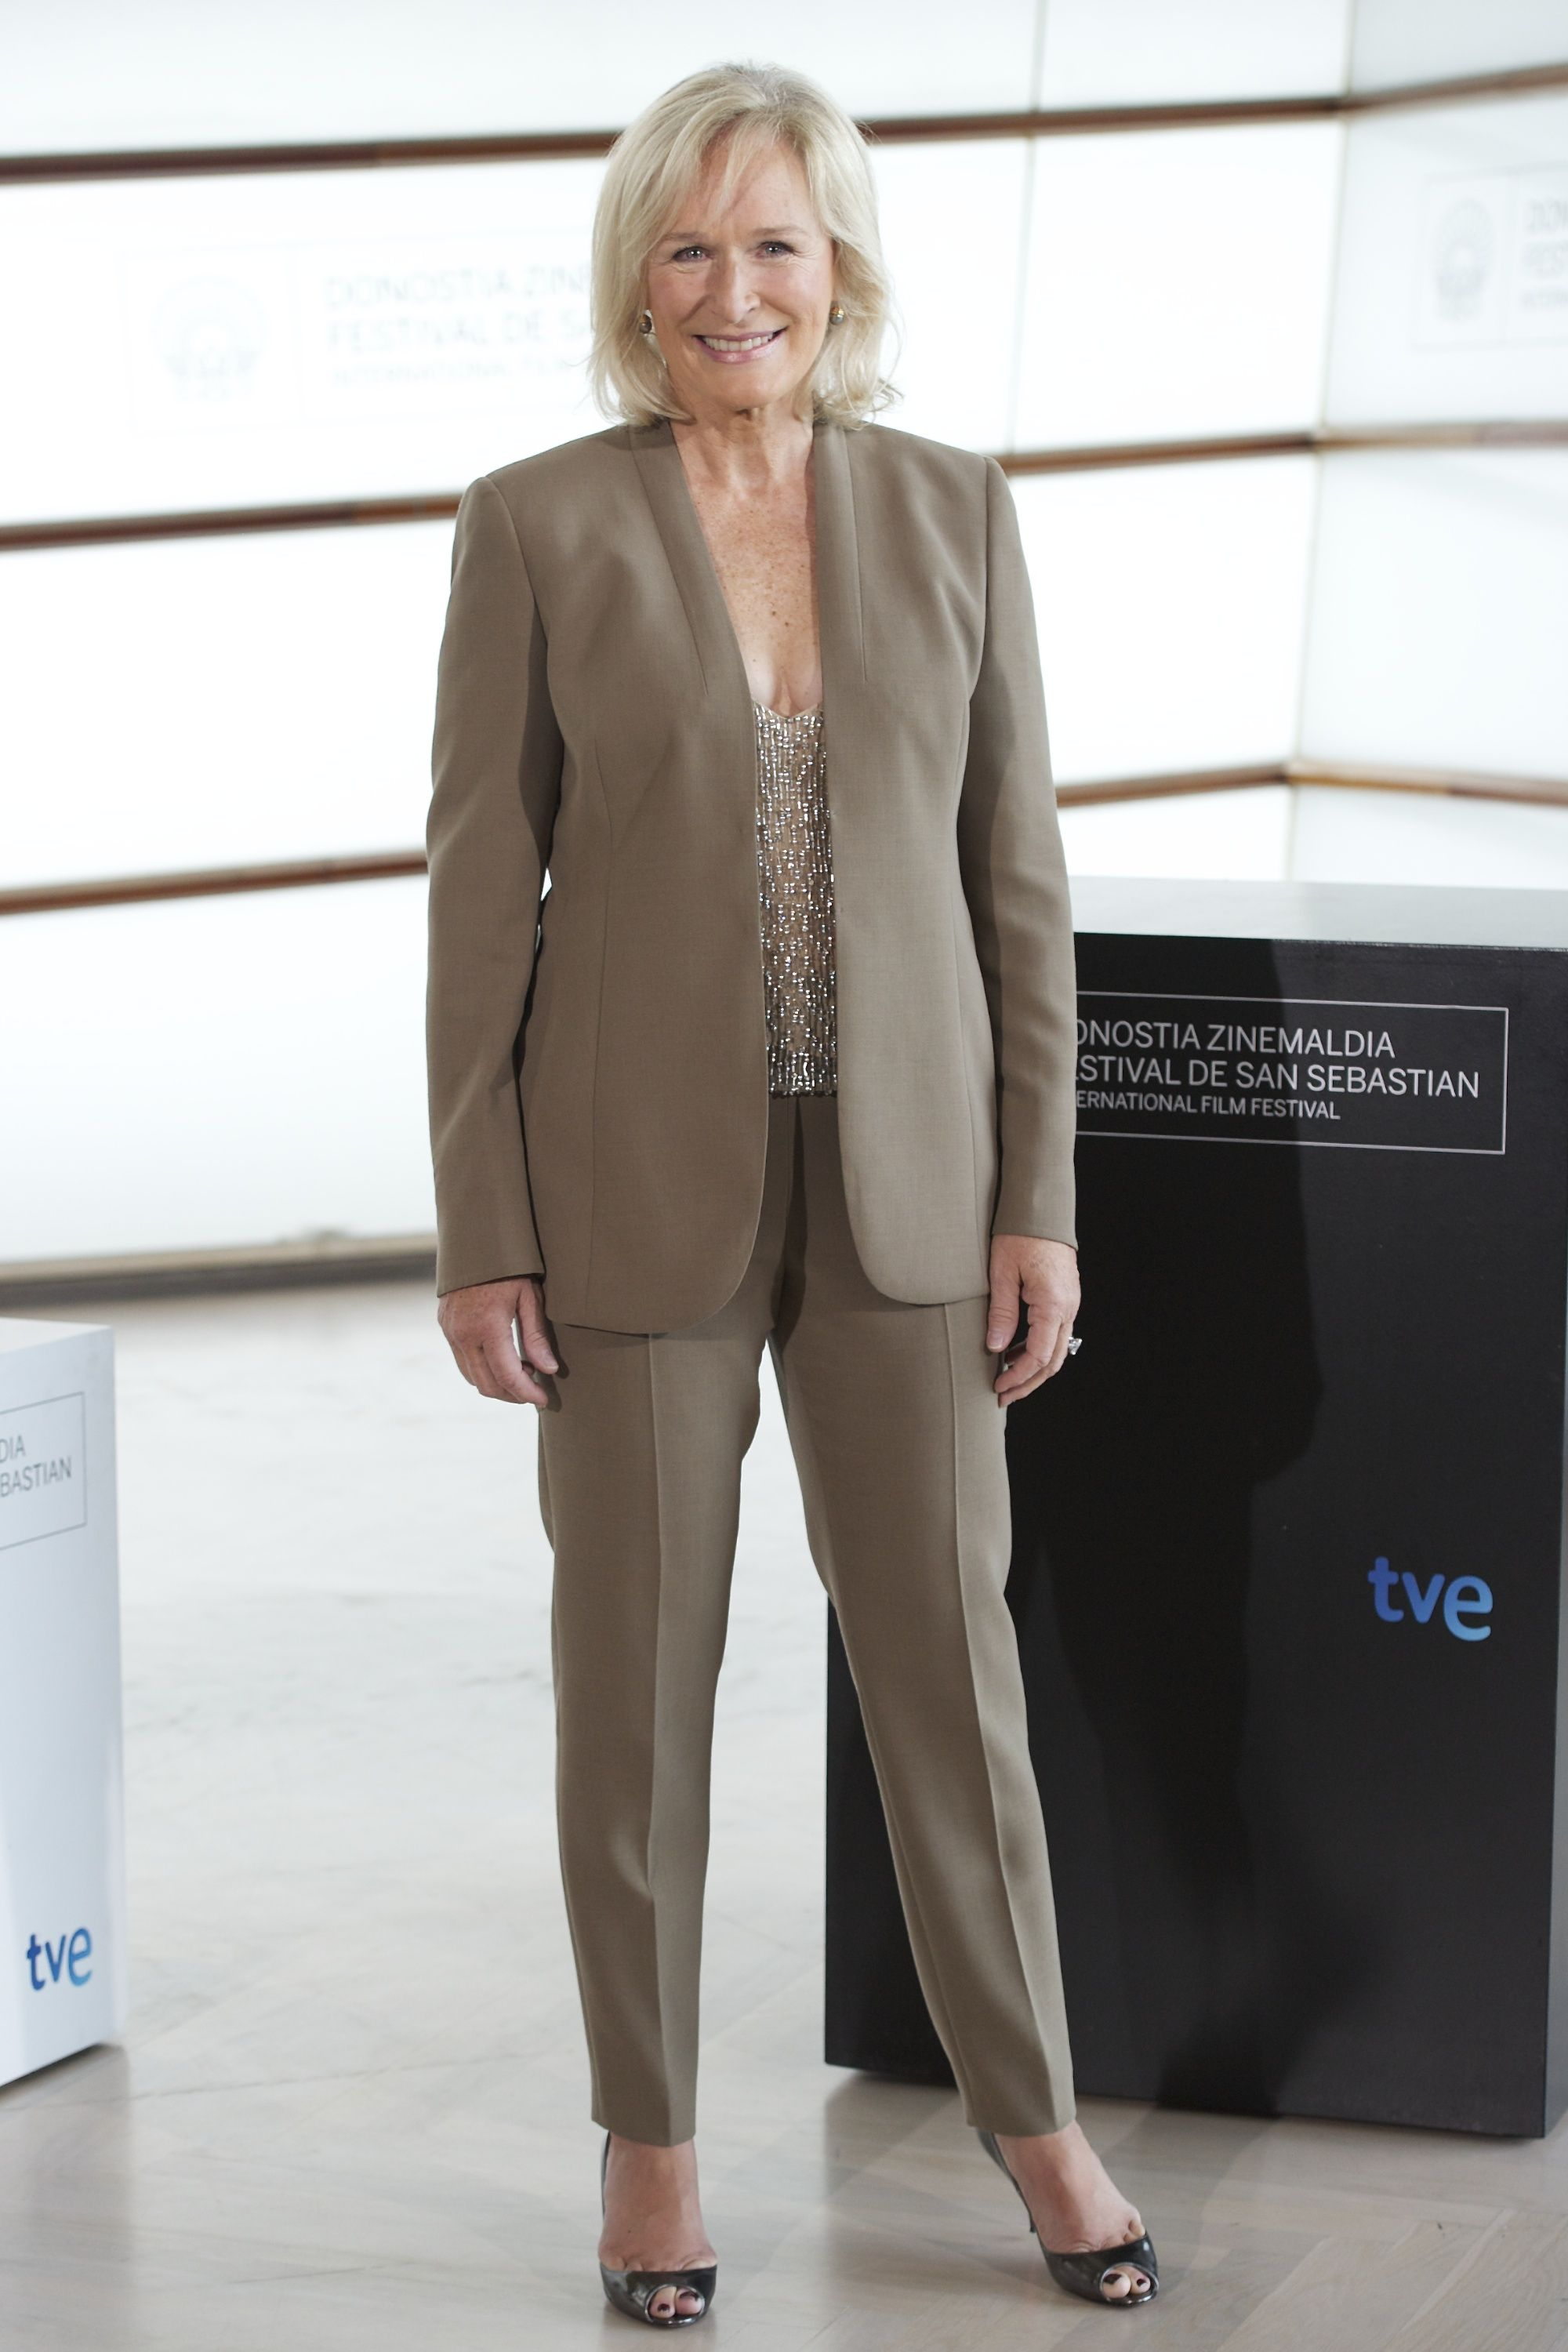 Glenn Close wore a beige pant suit with a beaded top and a pair of metallic heels while promoting her film Albert Nobbs the San Sebastian International Film Festival.